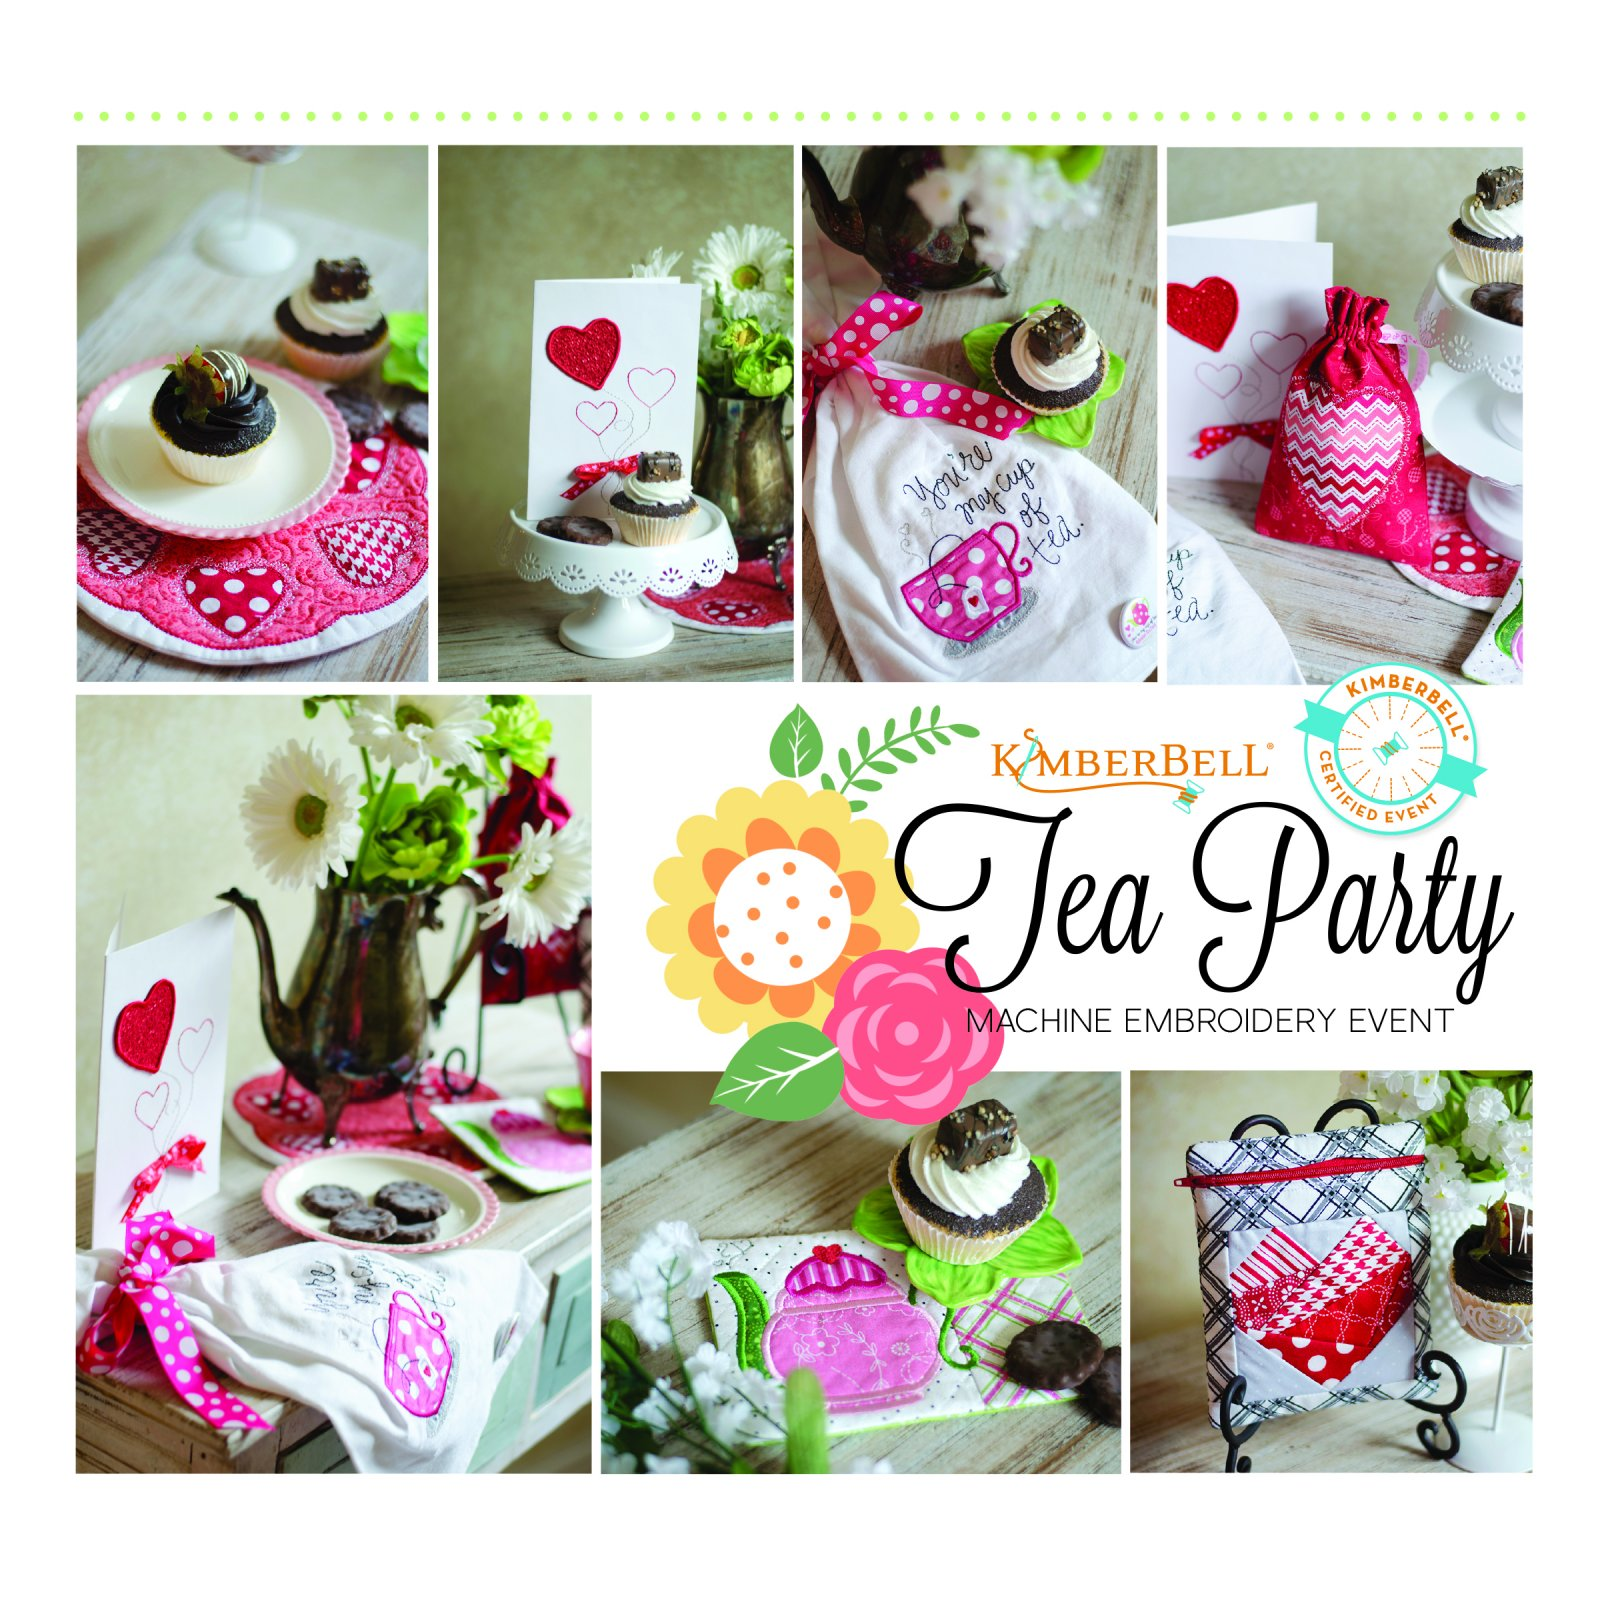 Kimberbell Tea Party